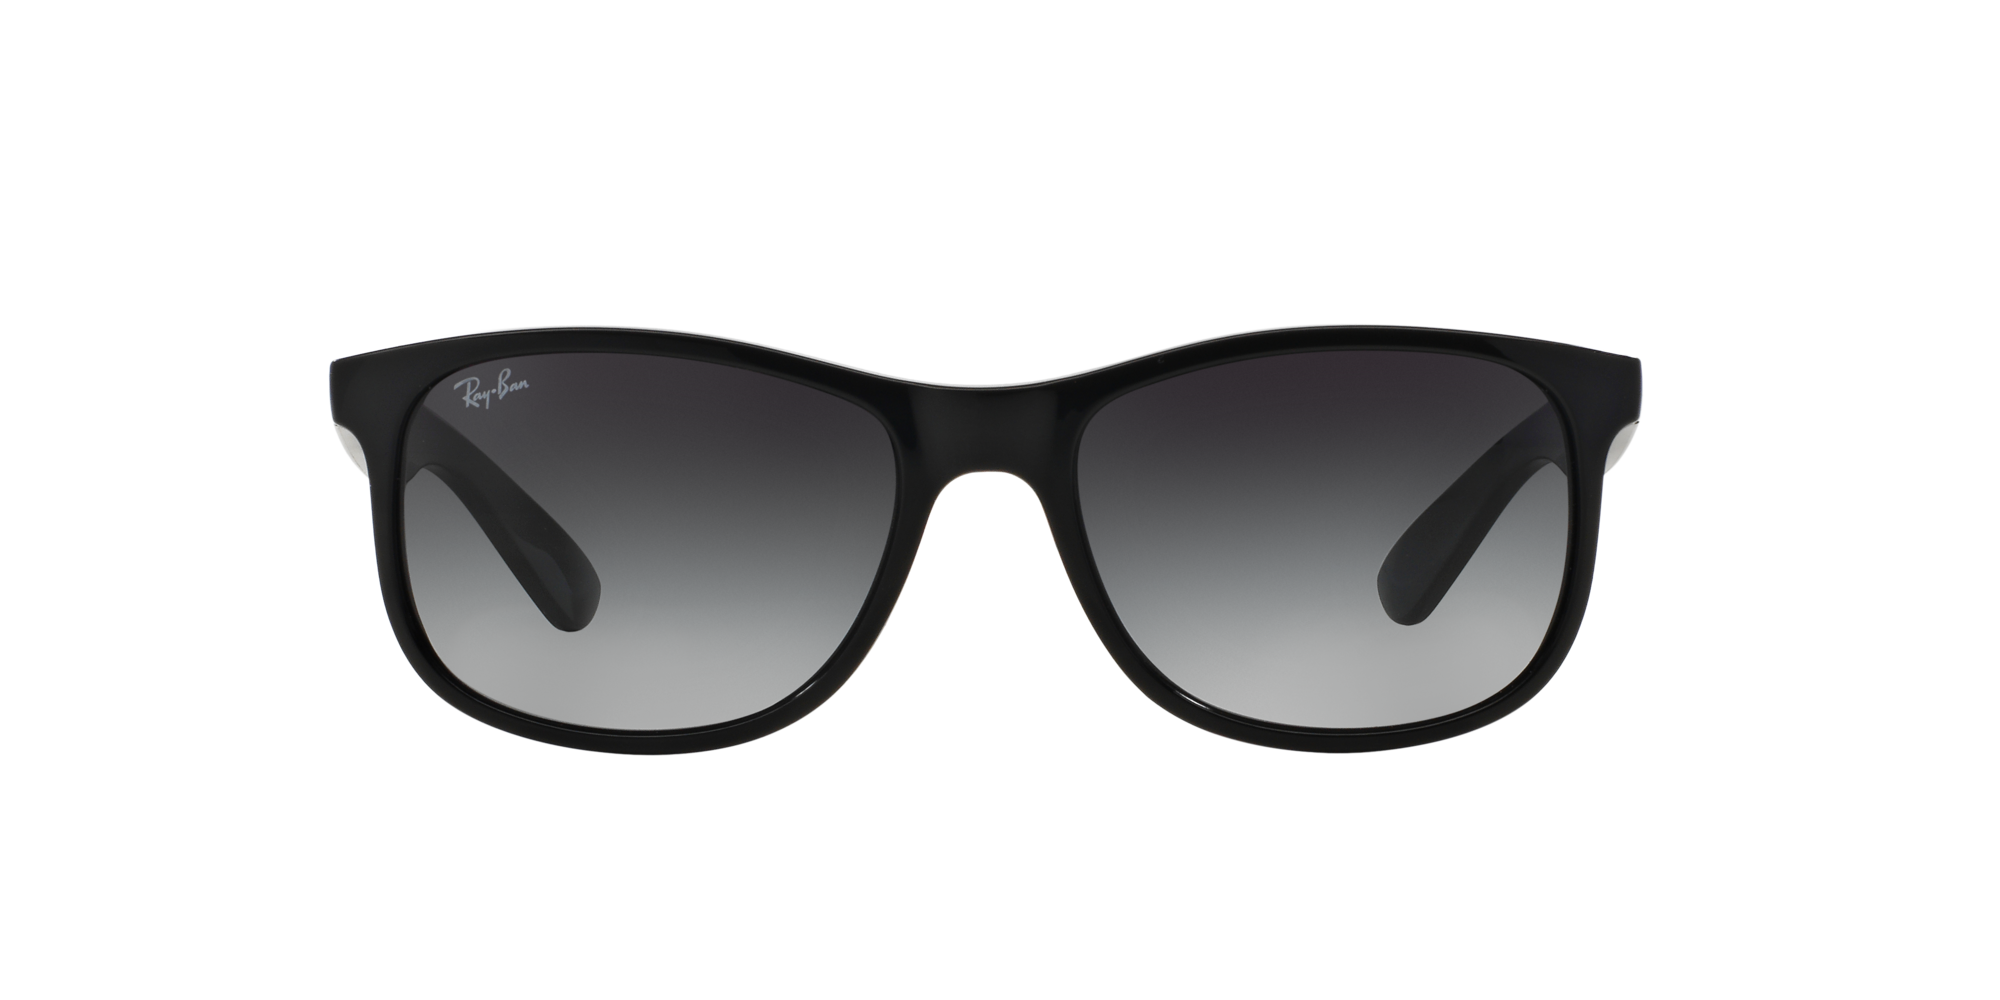 gafas de sol RAY-BAN ANDY RB 4202 601 8G. 360° Product View 360° Product  View ... 7006dd501e